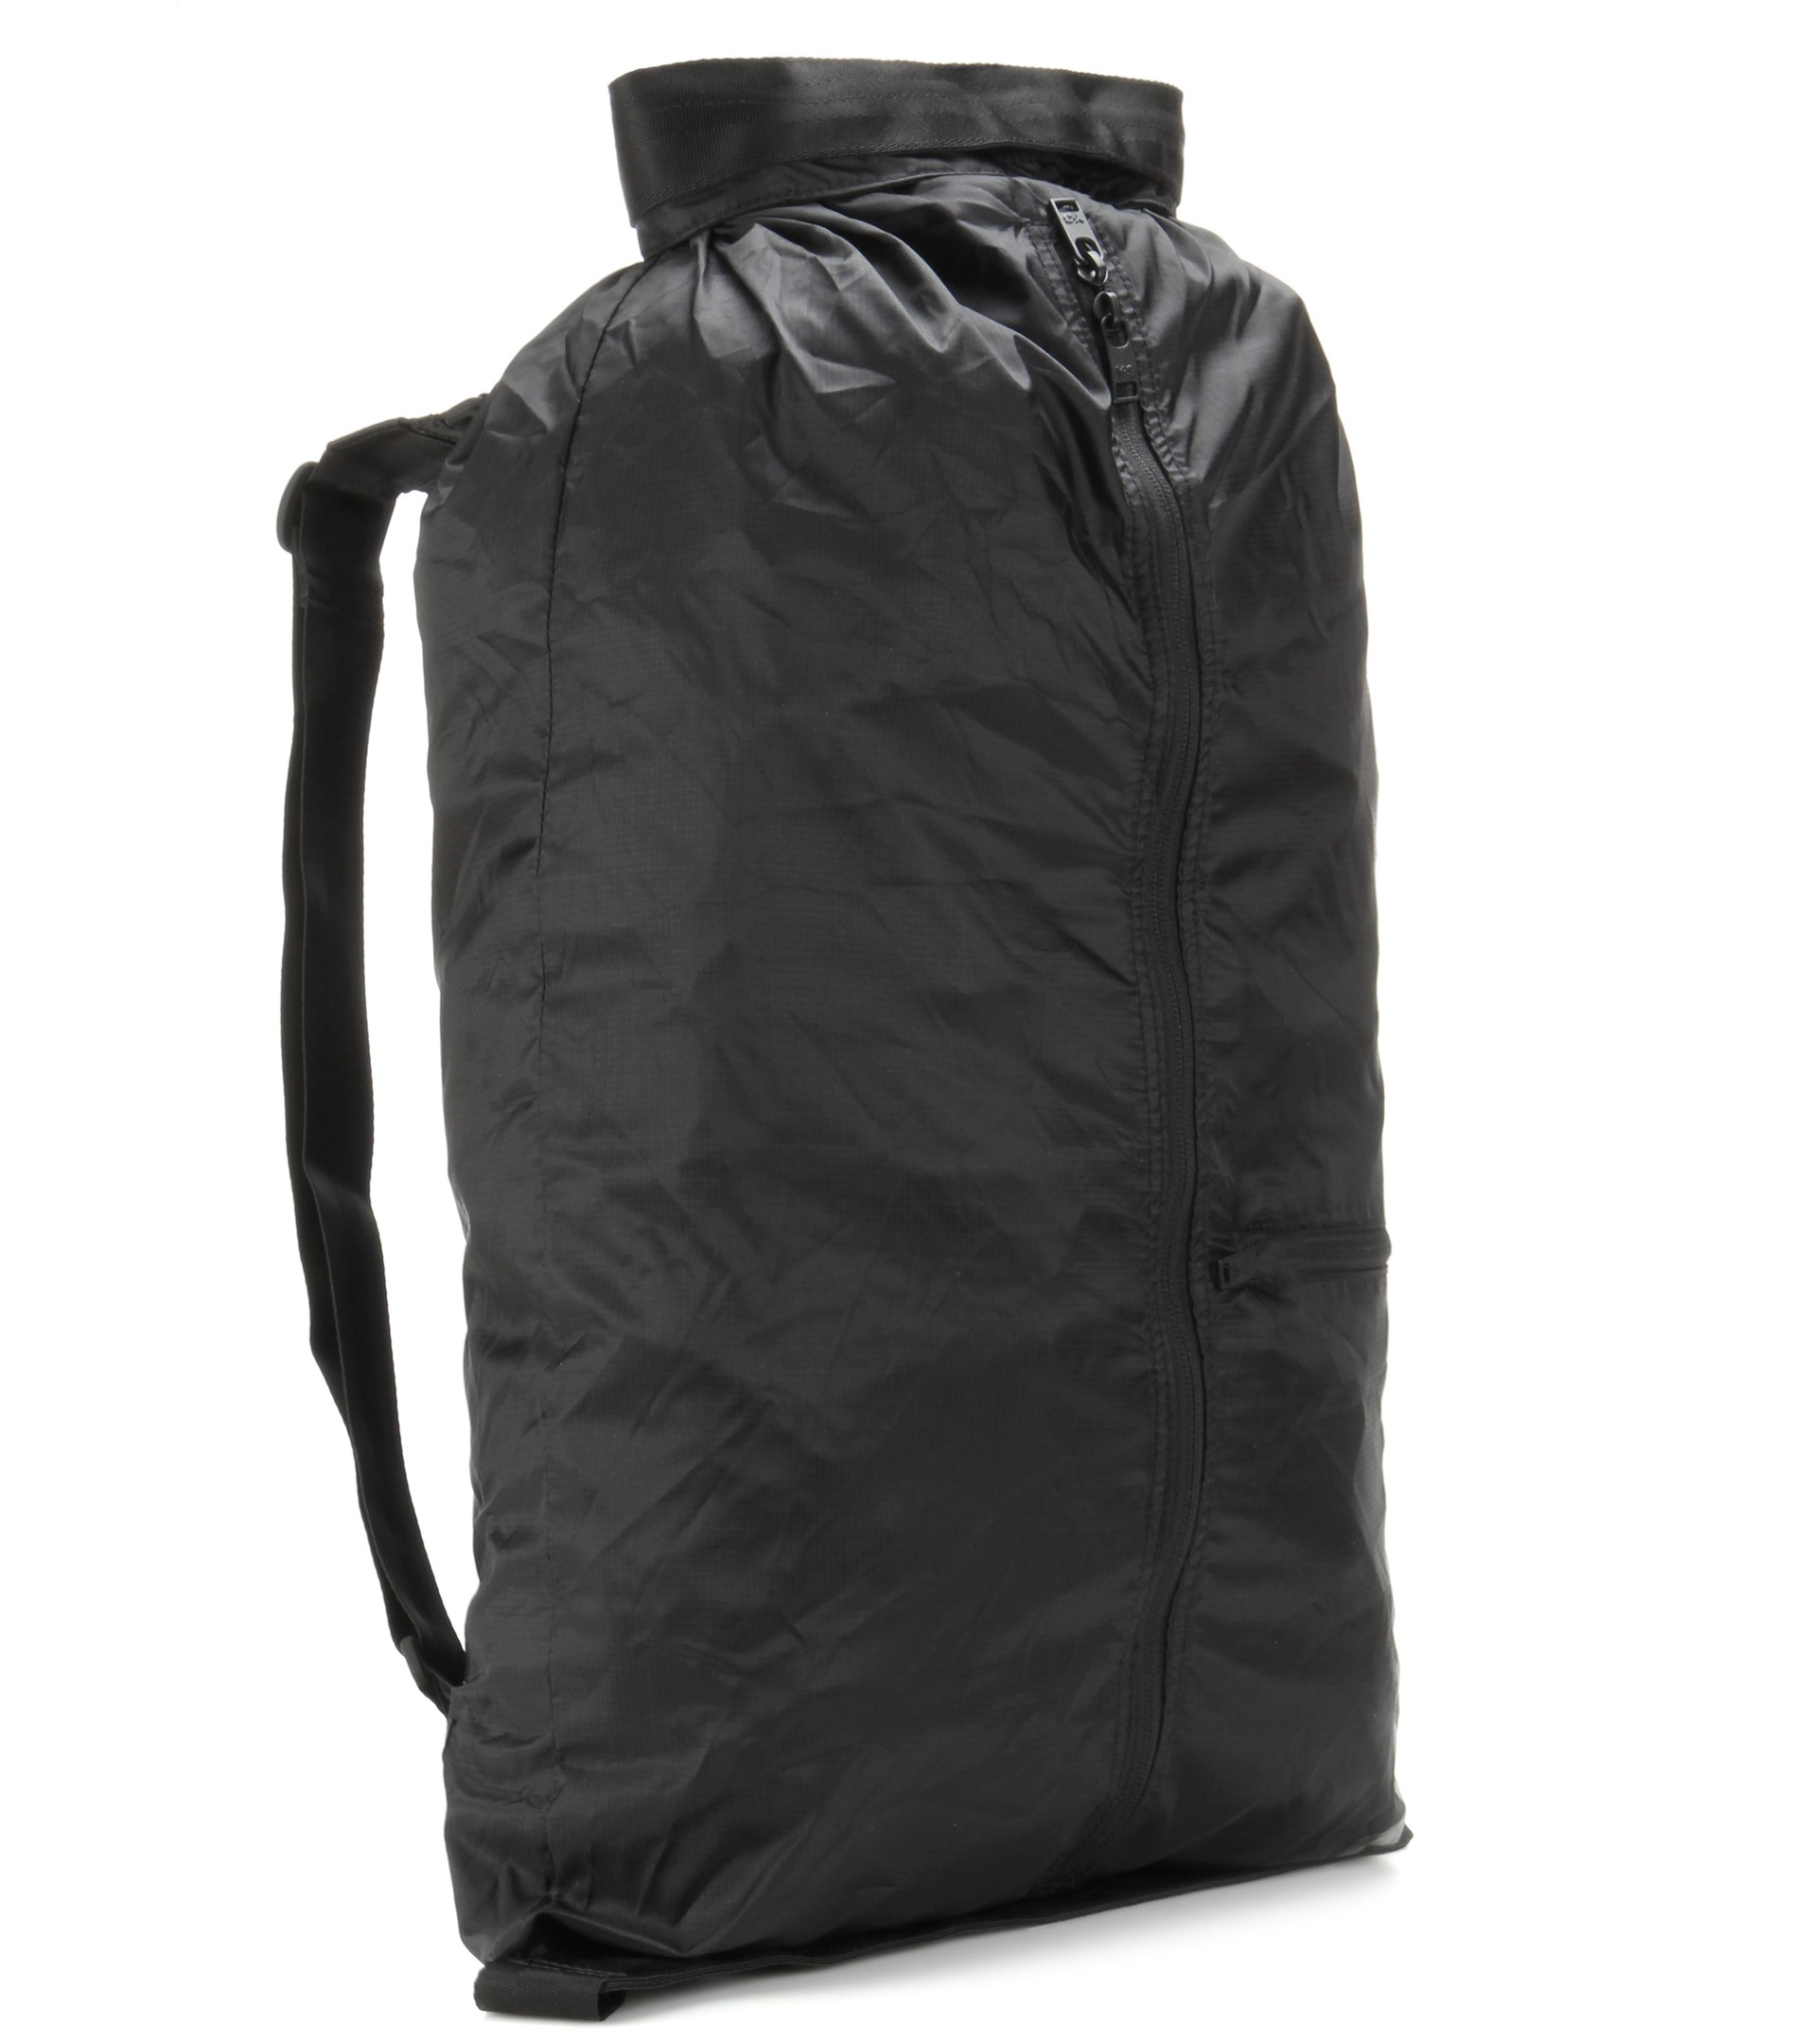 215632e7ed Lyst - Y-3 Packable Backpack in Black